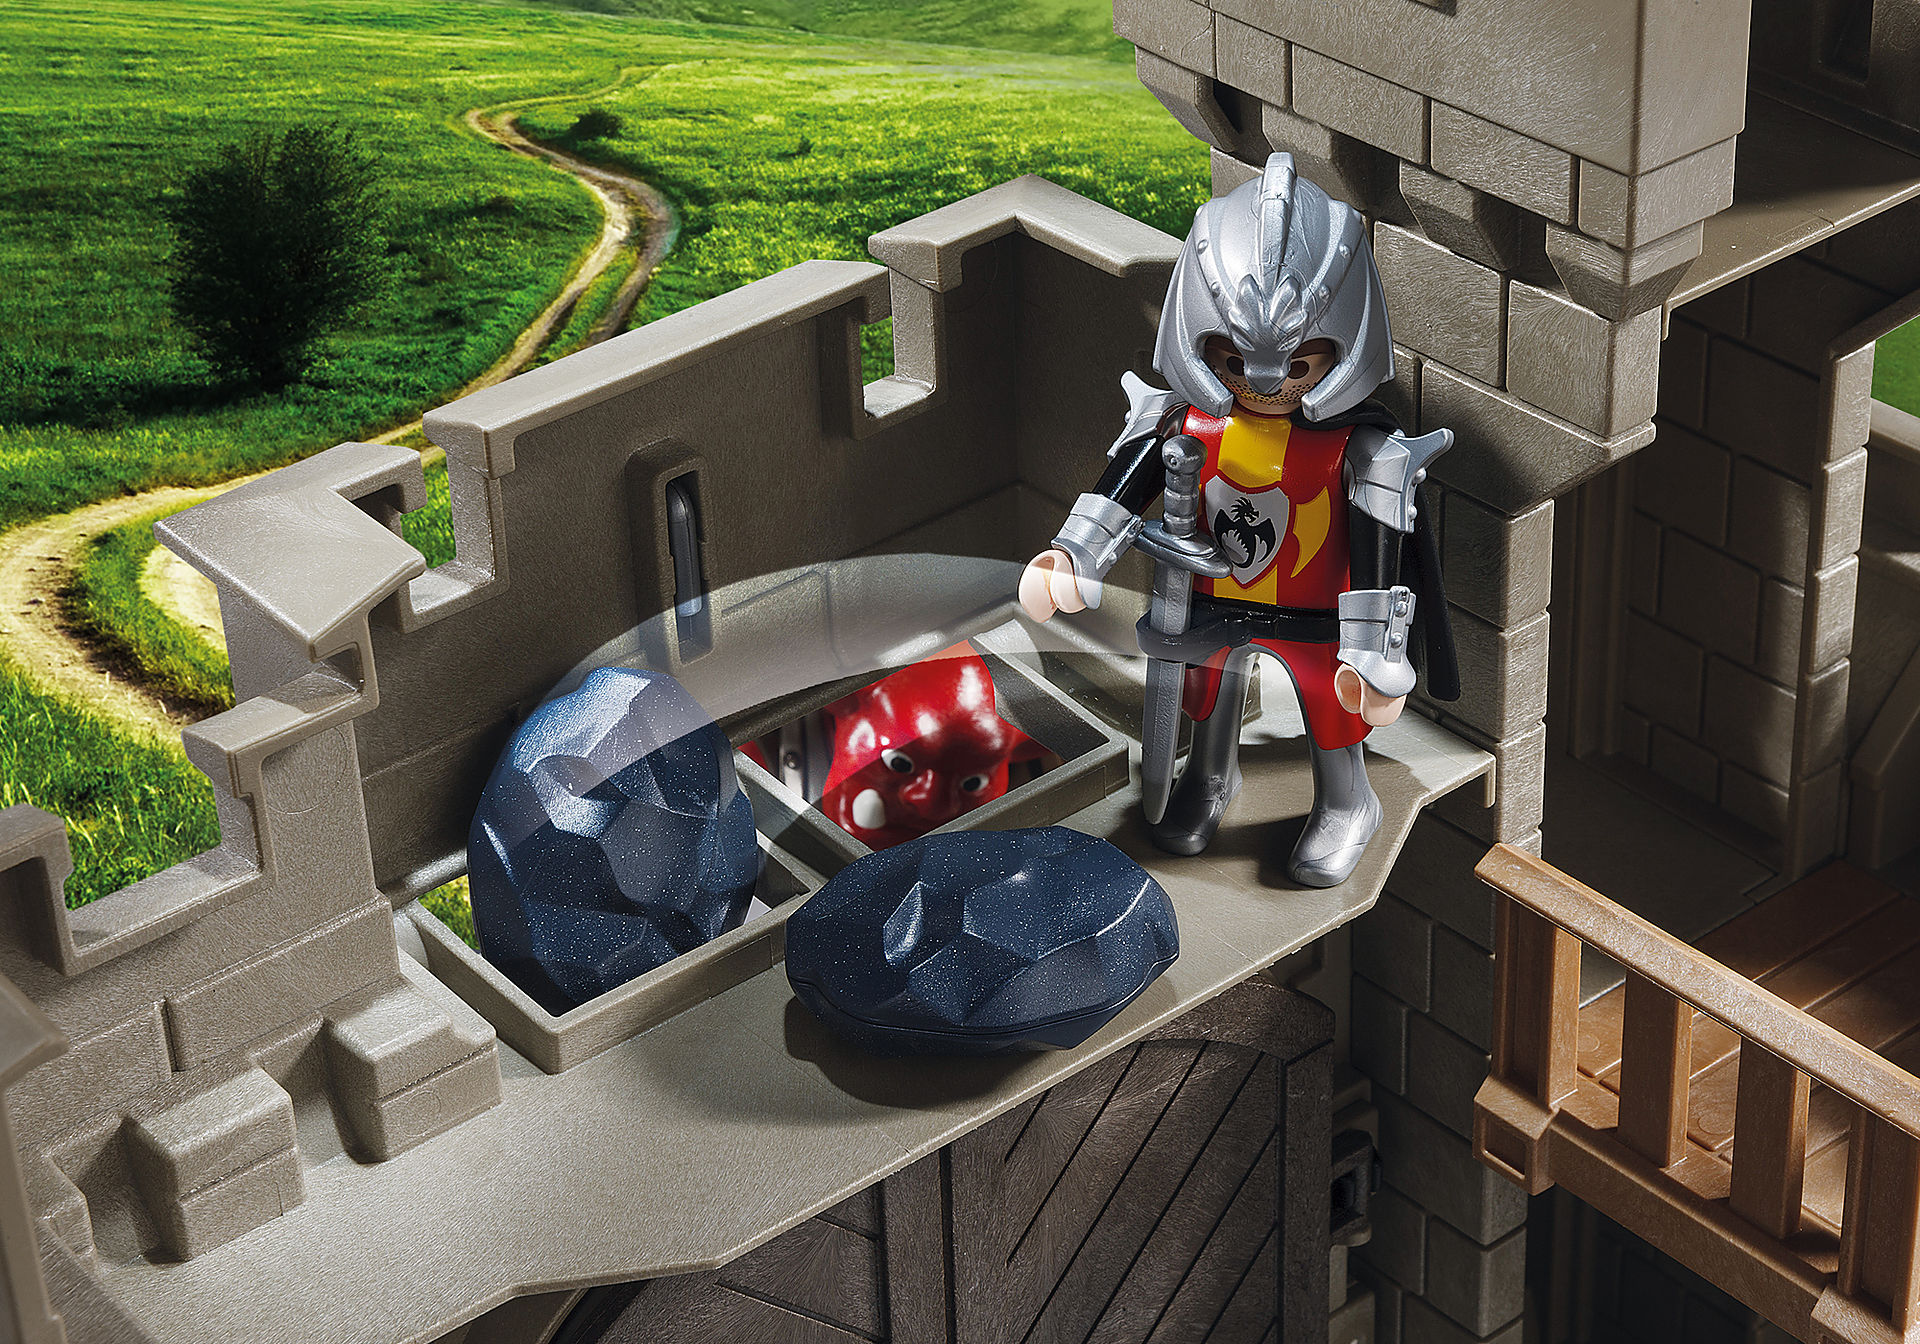 http://media.playmobil.com/i/playmobil/5670_product_extra1/Burgtor mit Riesentroll